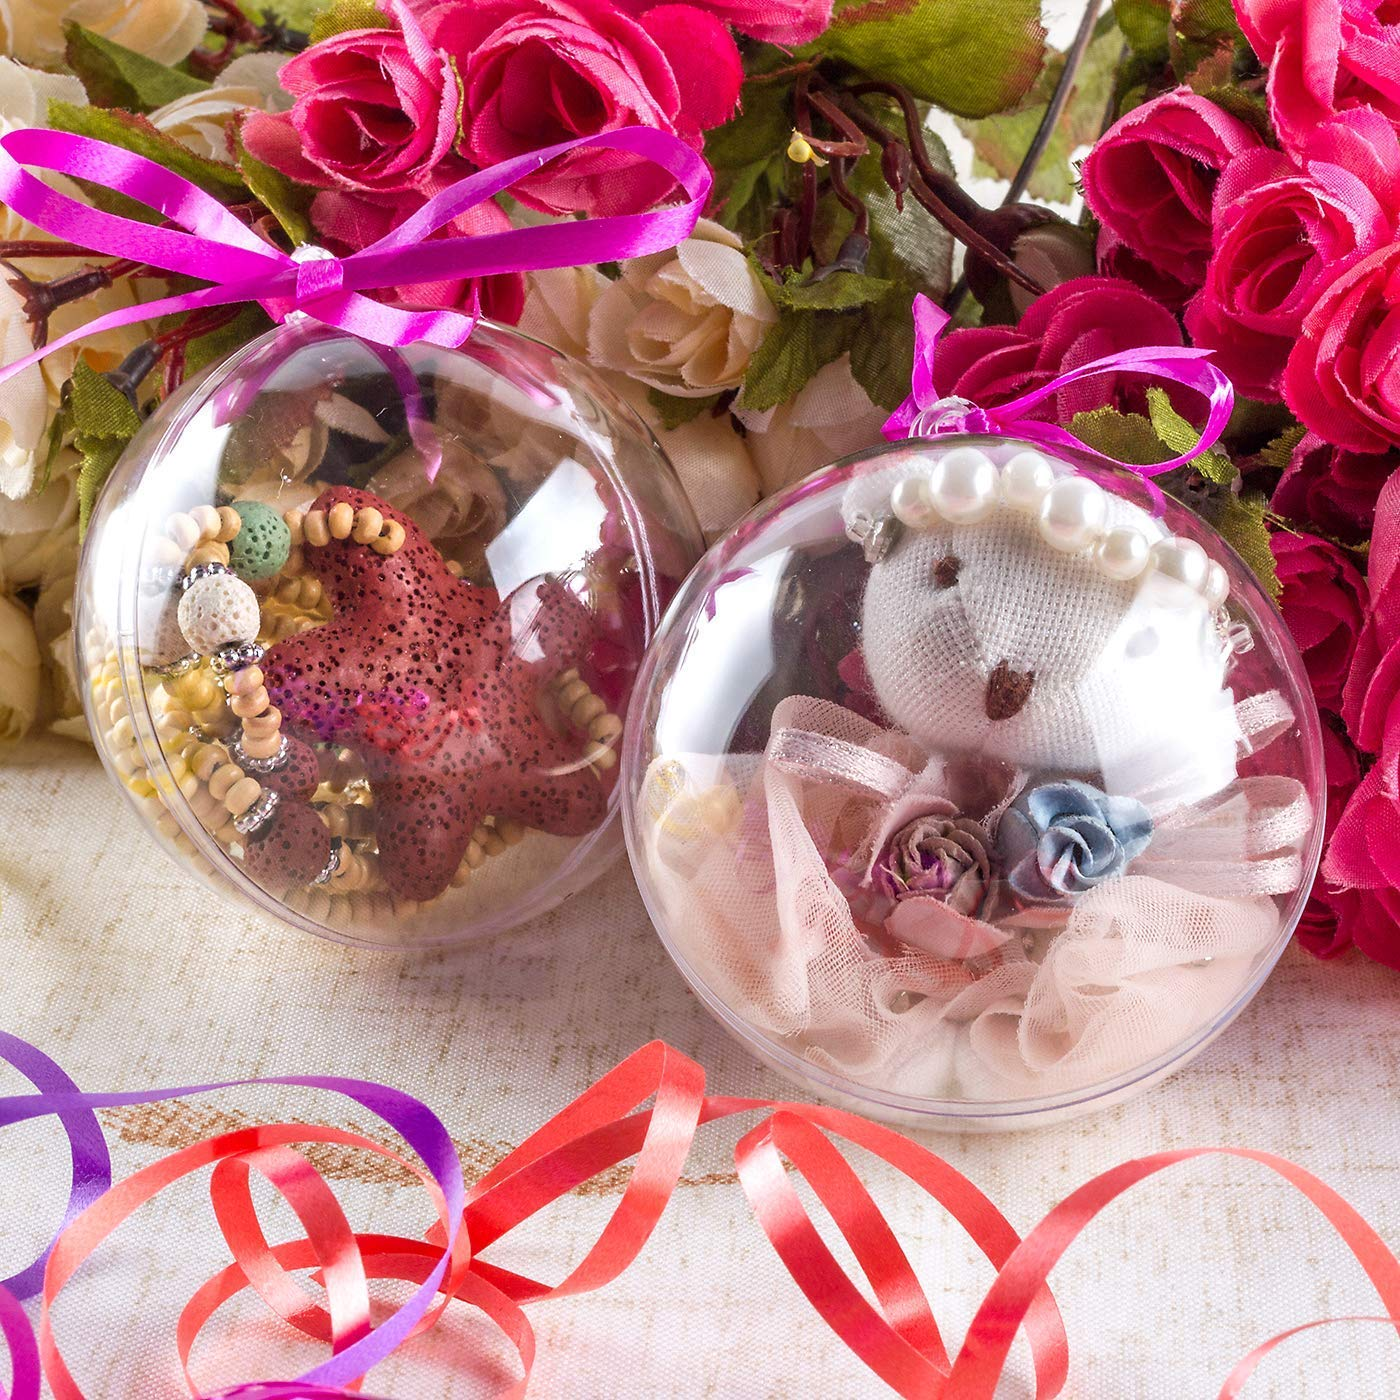 salare 10pcs Clear Fillable Ornaments Ball 80mm Plastic Craft Ornaments for Christmas Tree Decor